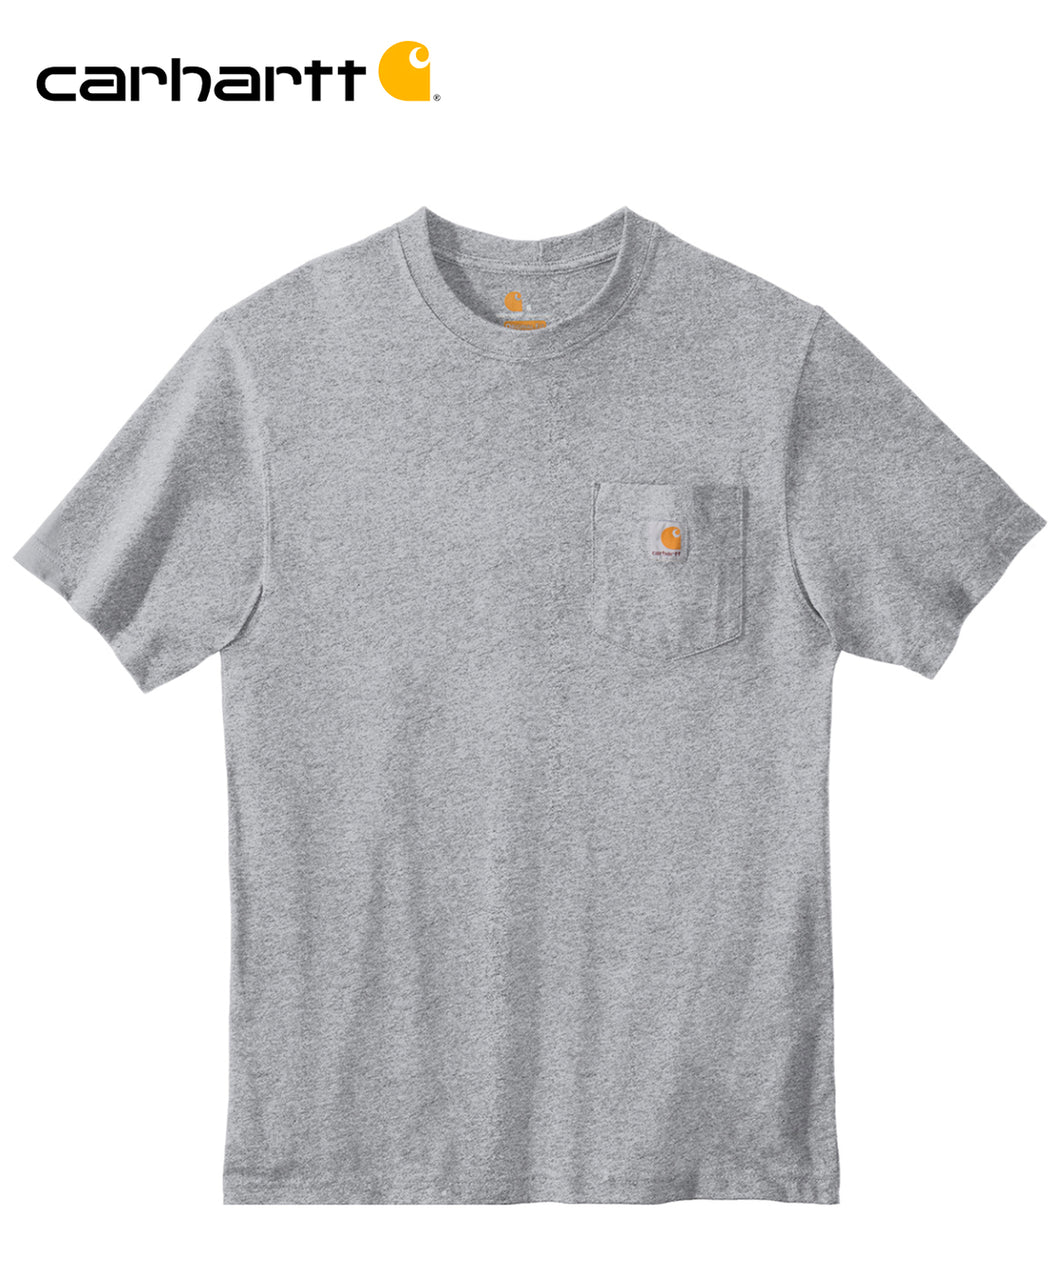 Carhartt Poket Short Sleeve Grey